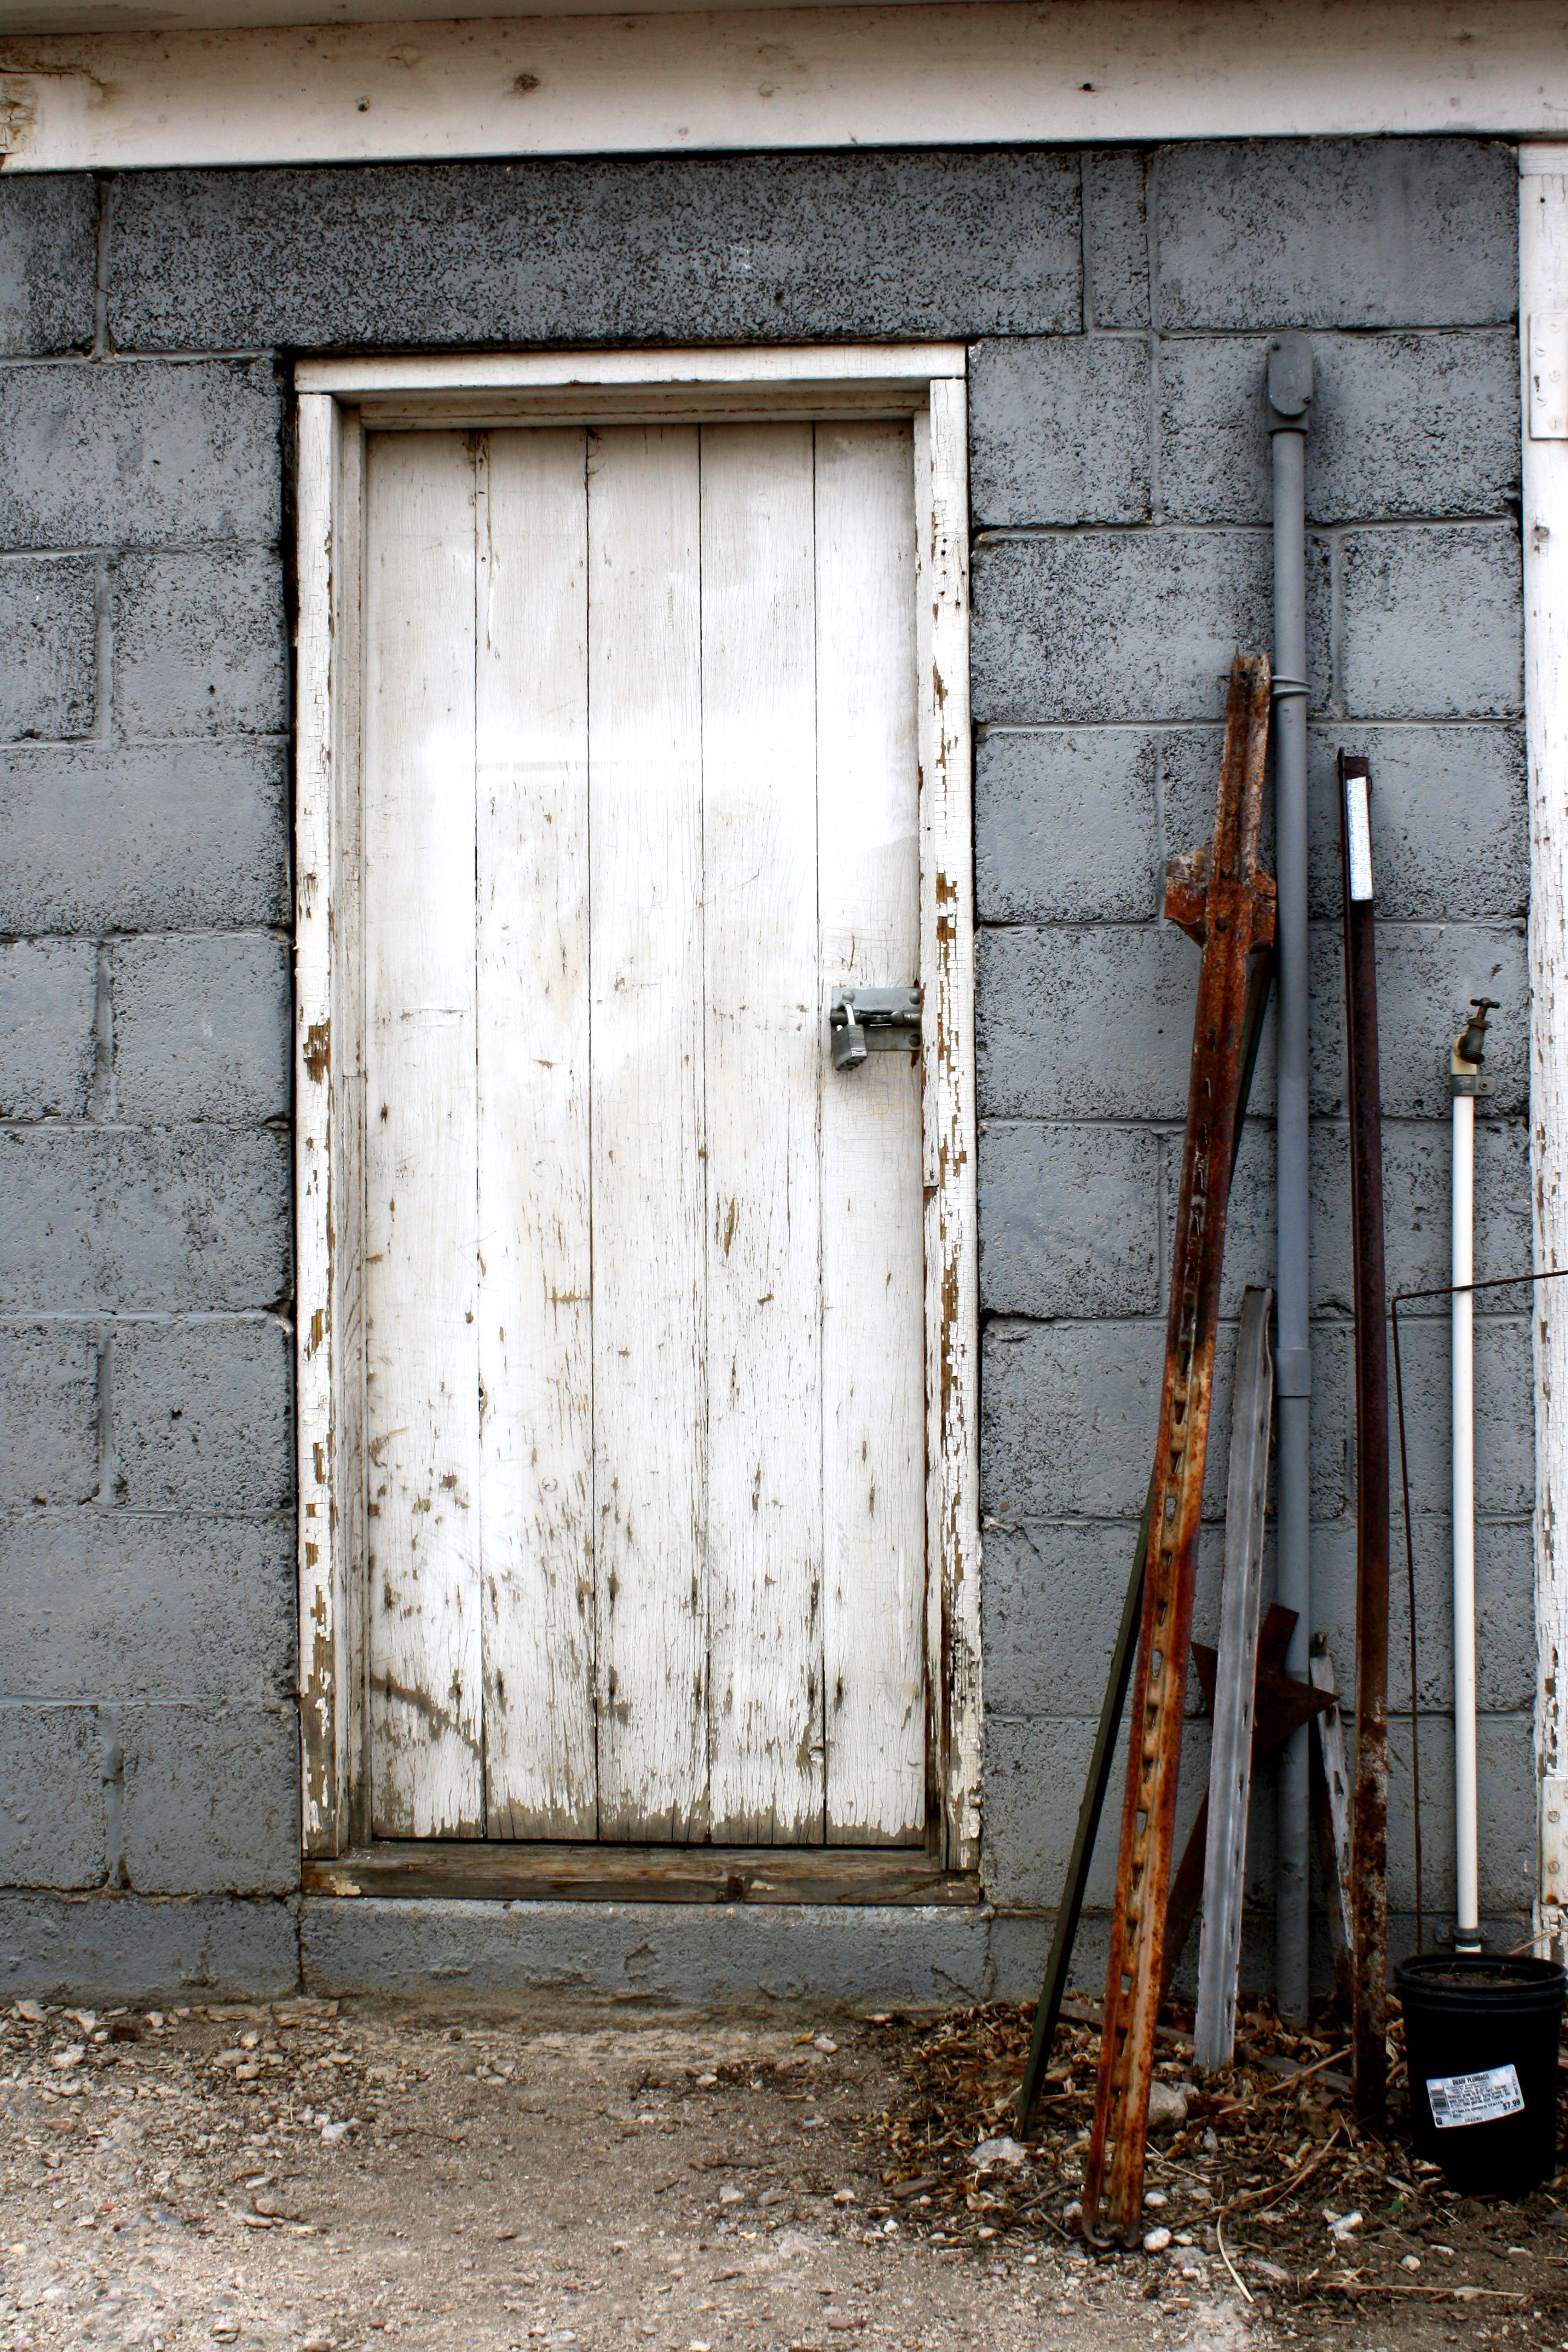 Le Meilleur Old Shed Door With Metal Stakes Leaning Next To It Picture Ce Mois Ci